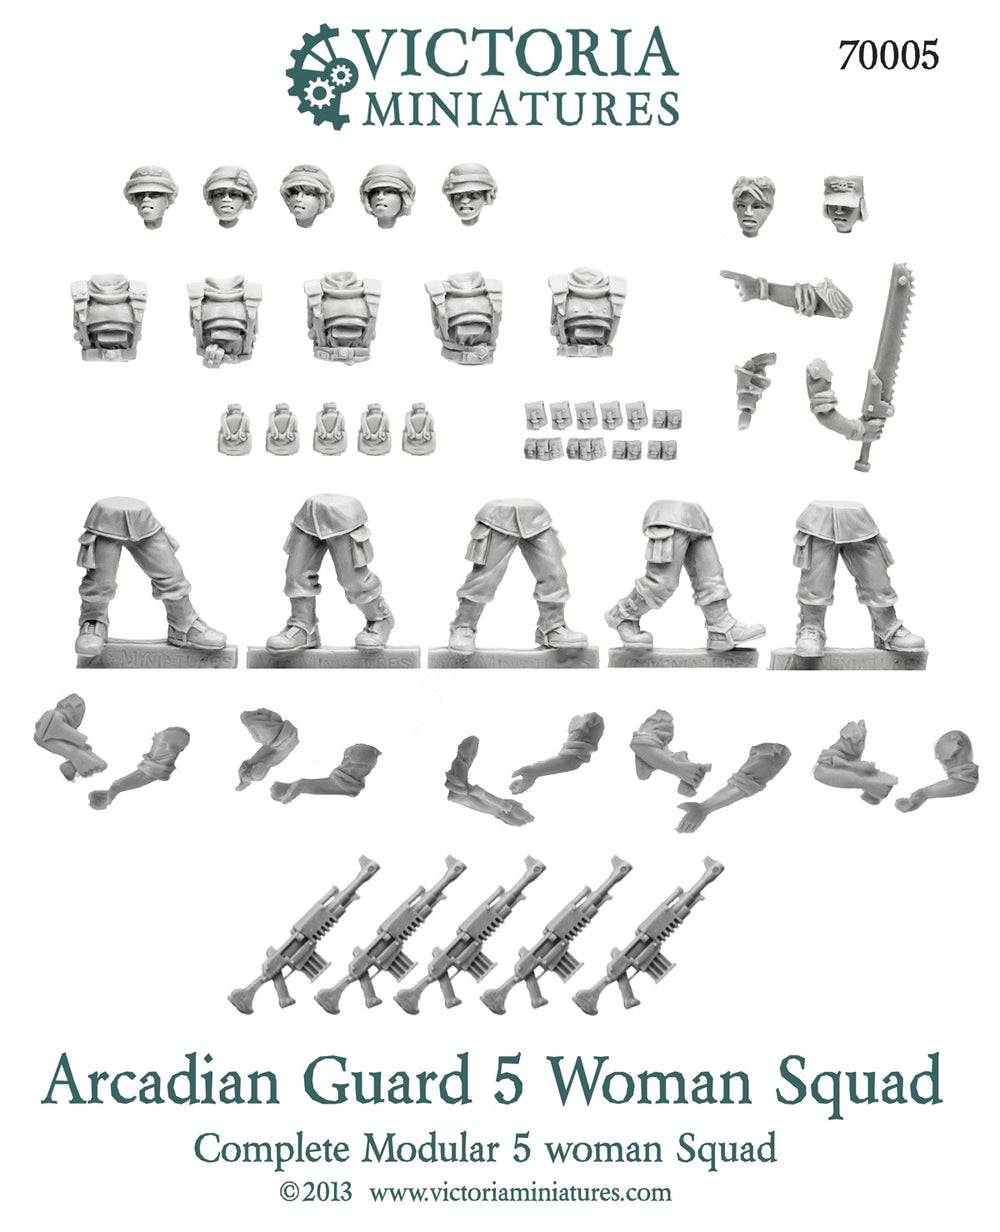 Arcadian Guard 5 Woman Squad.